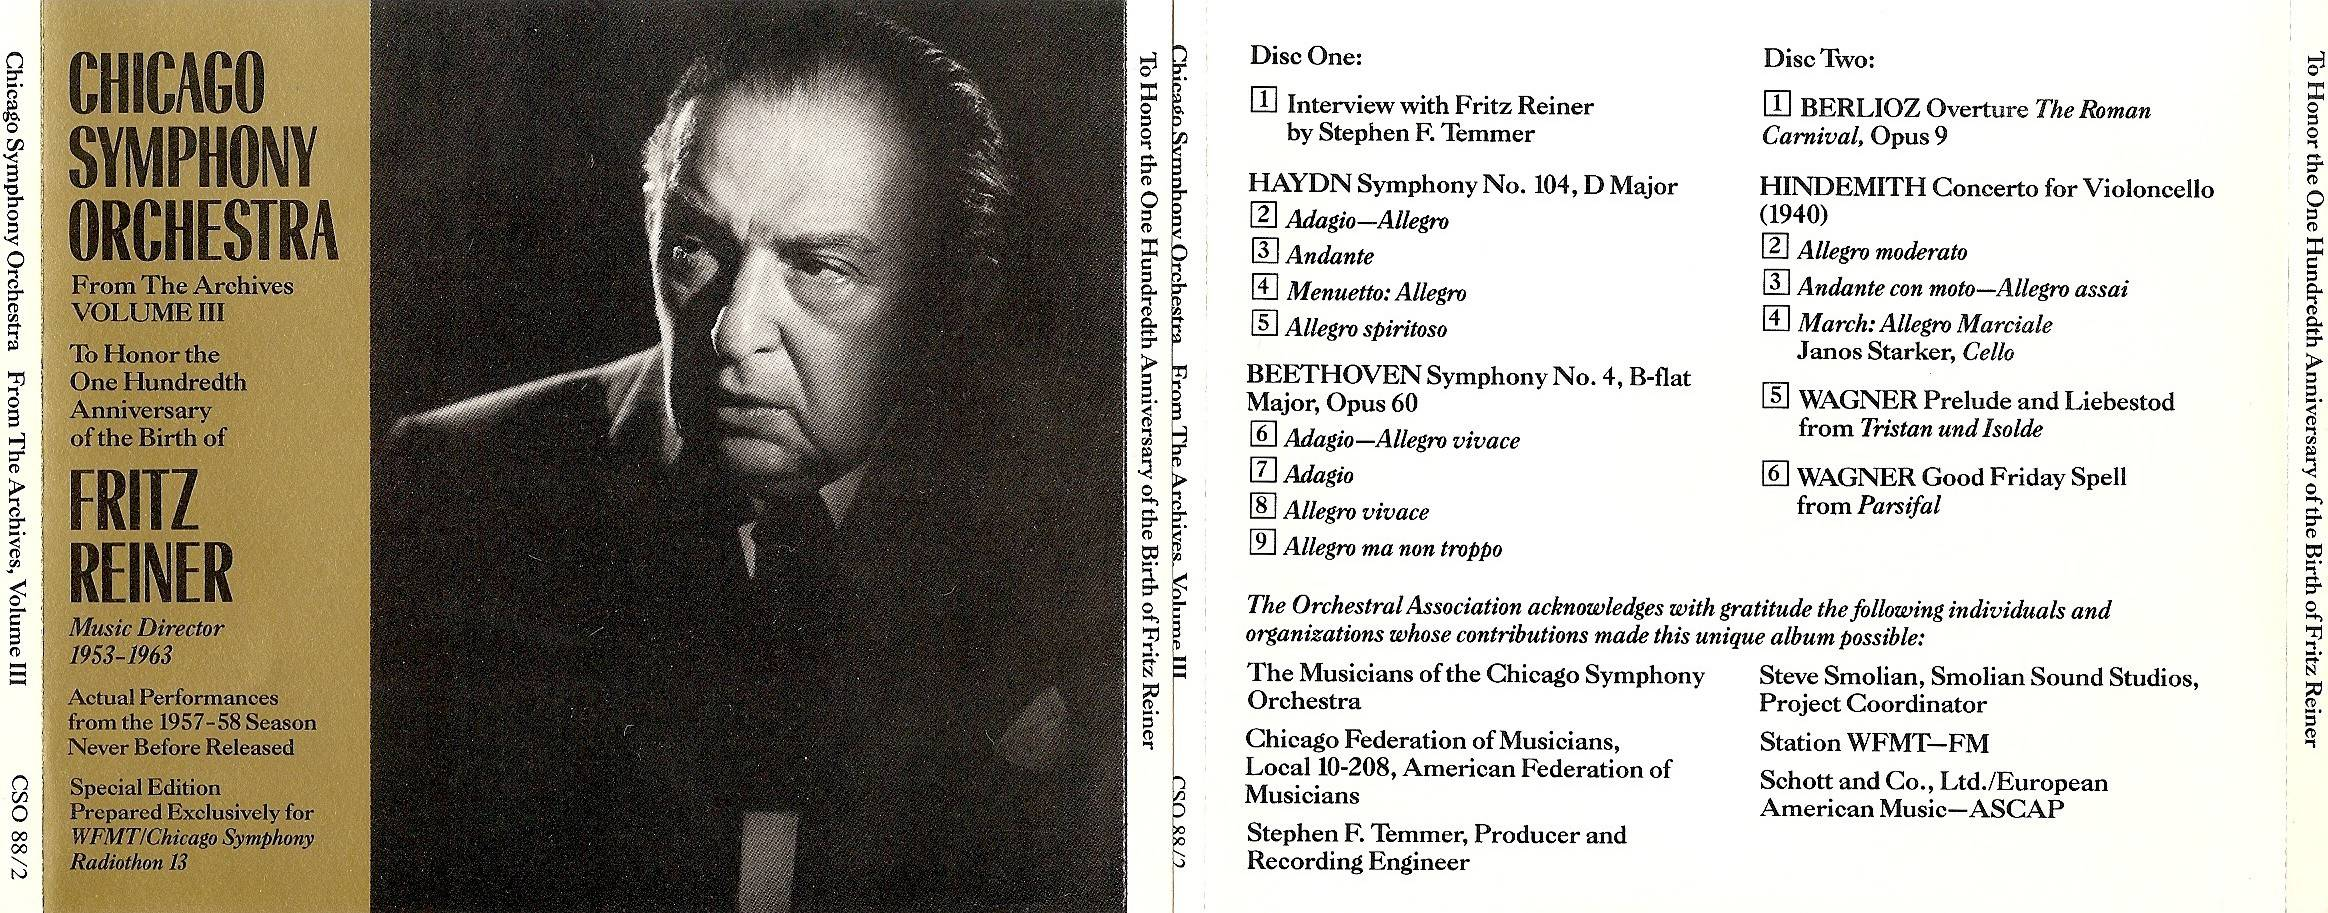 Chicago Symphony Orchestra - From The Archives, Vol.3: To Honor the 100th Birthday of Fritz Reiner, 2-CD set (1988)